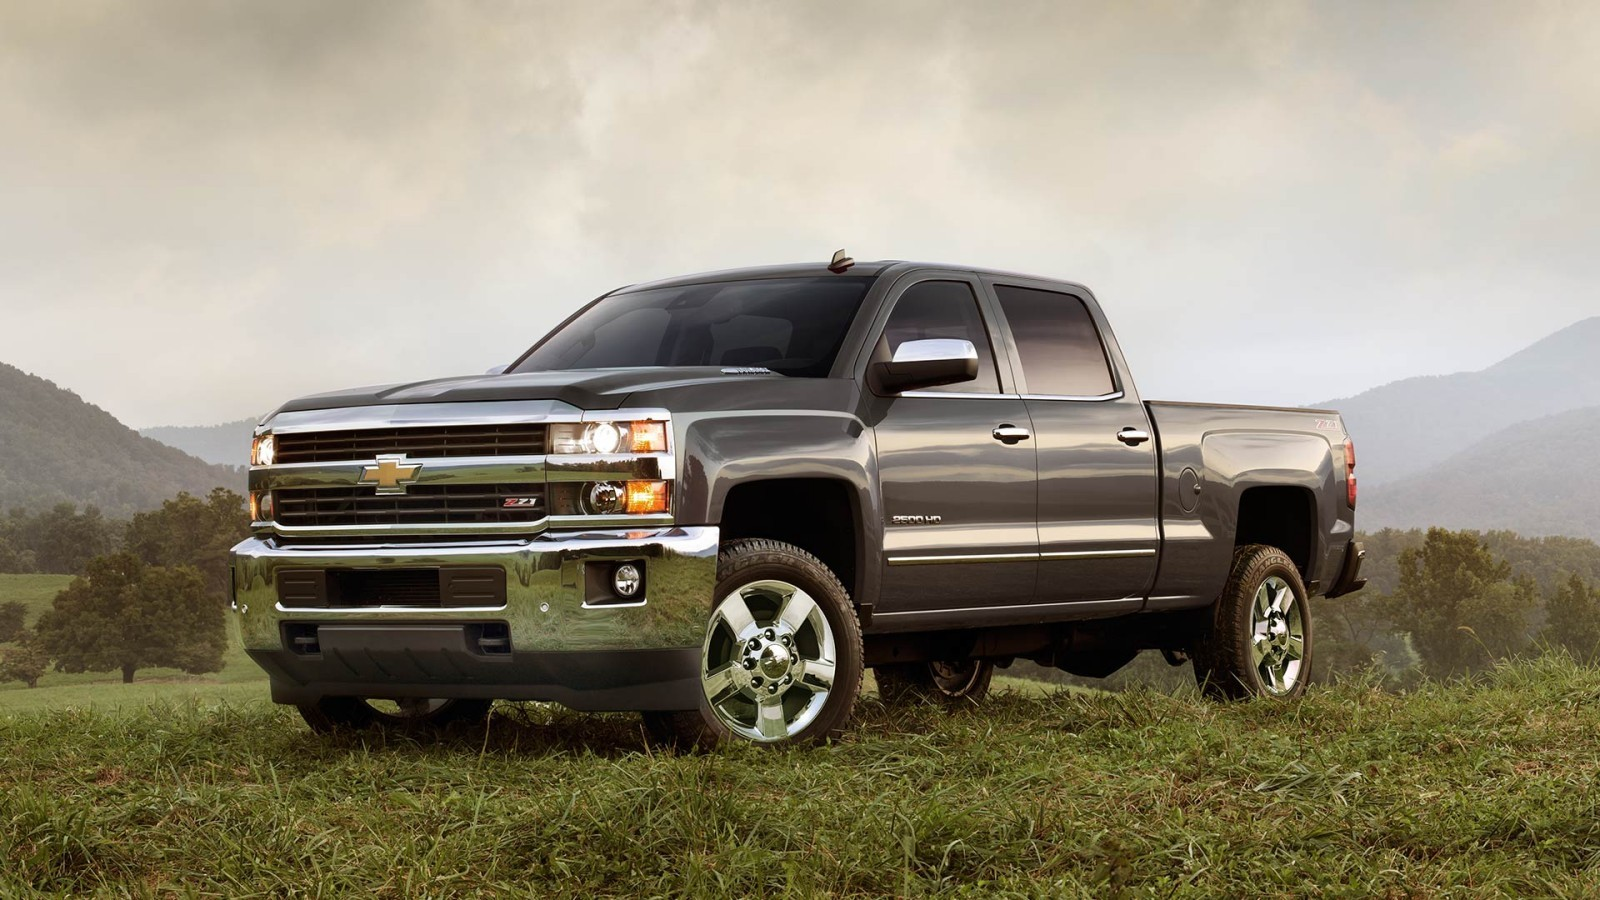 Chevy Colorado Trucks For Sale